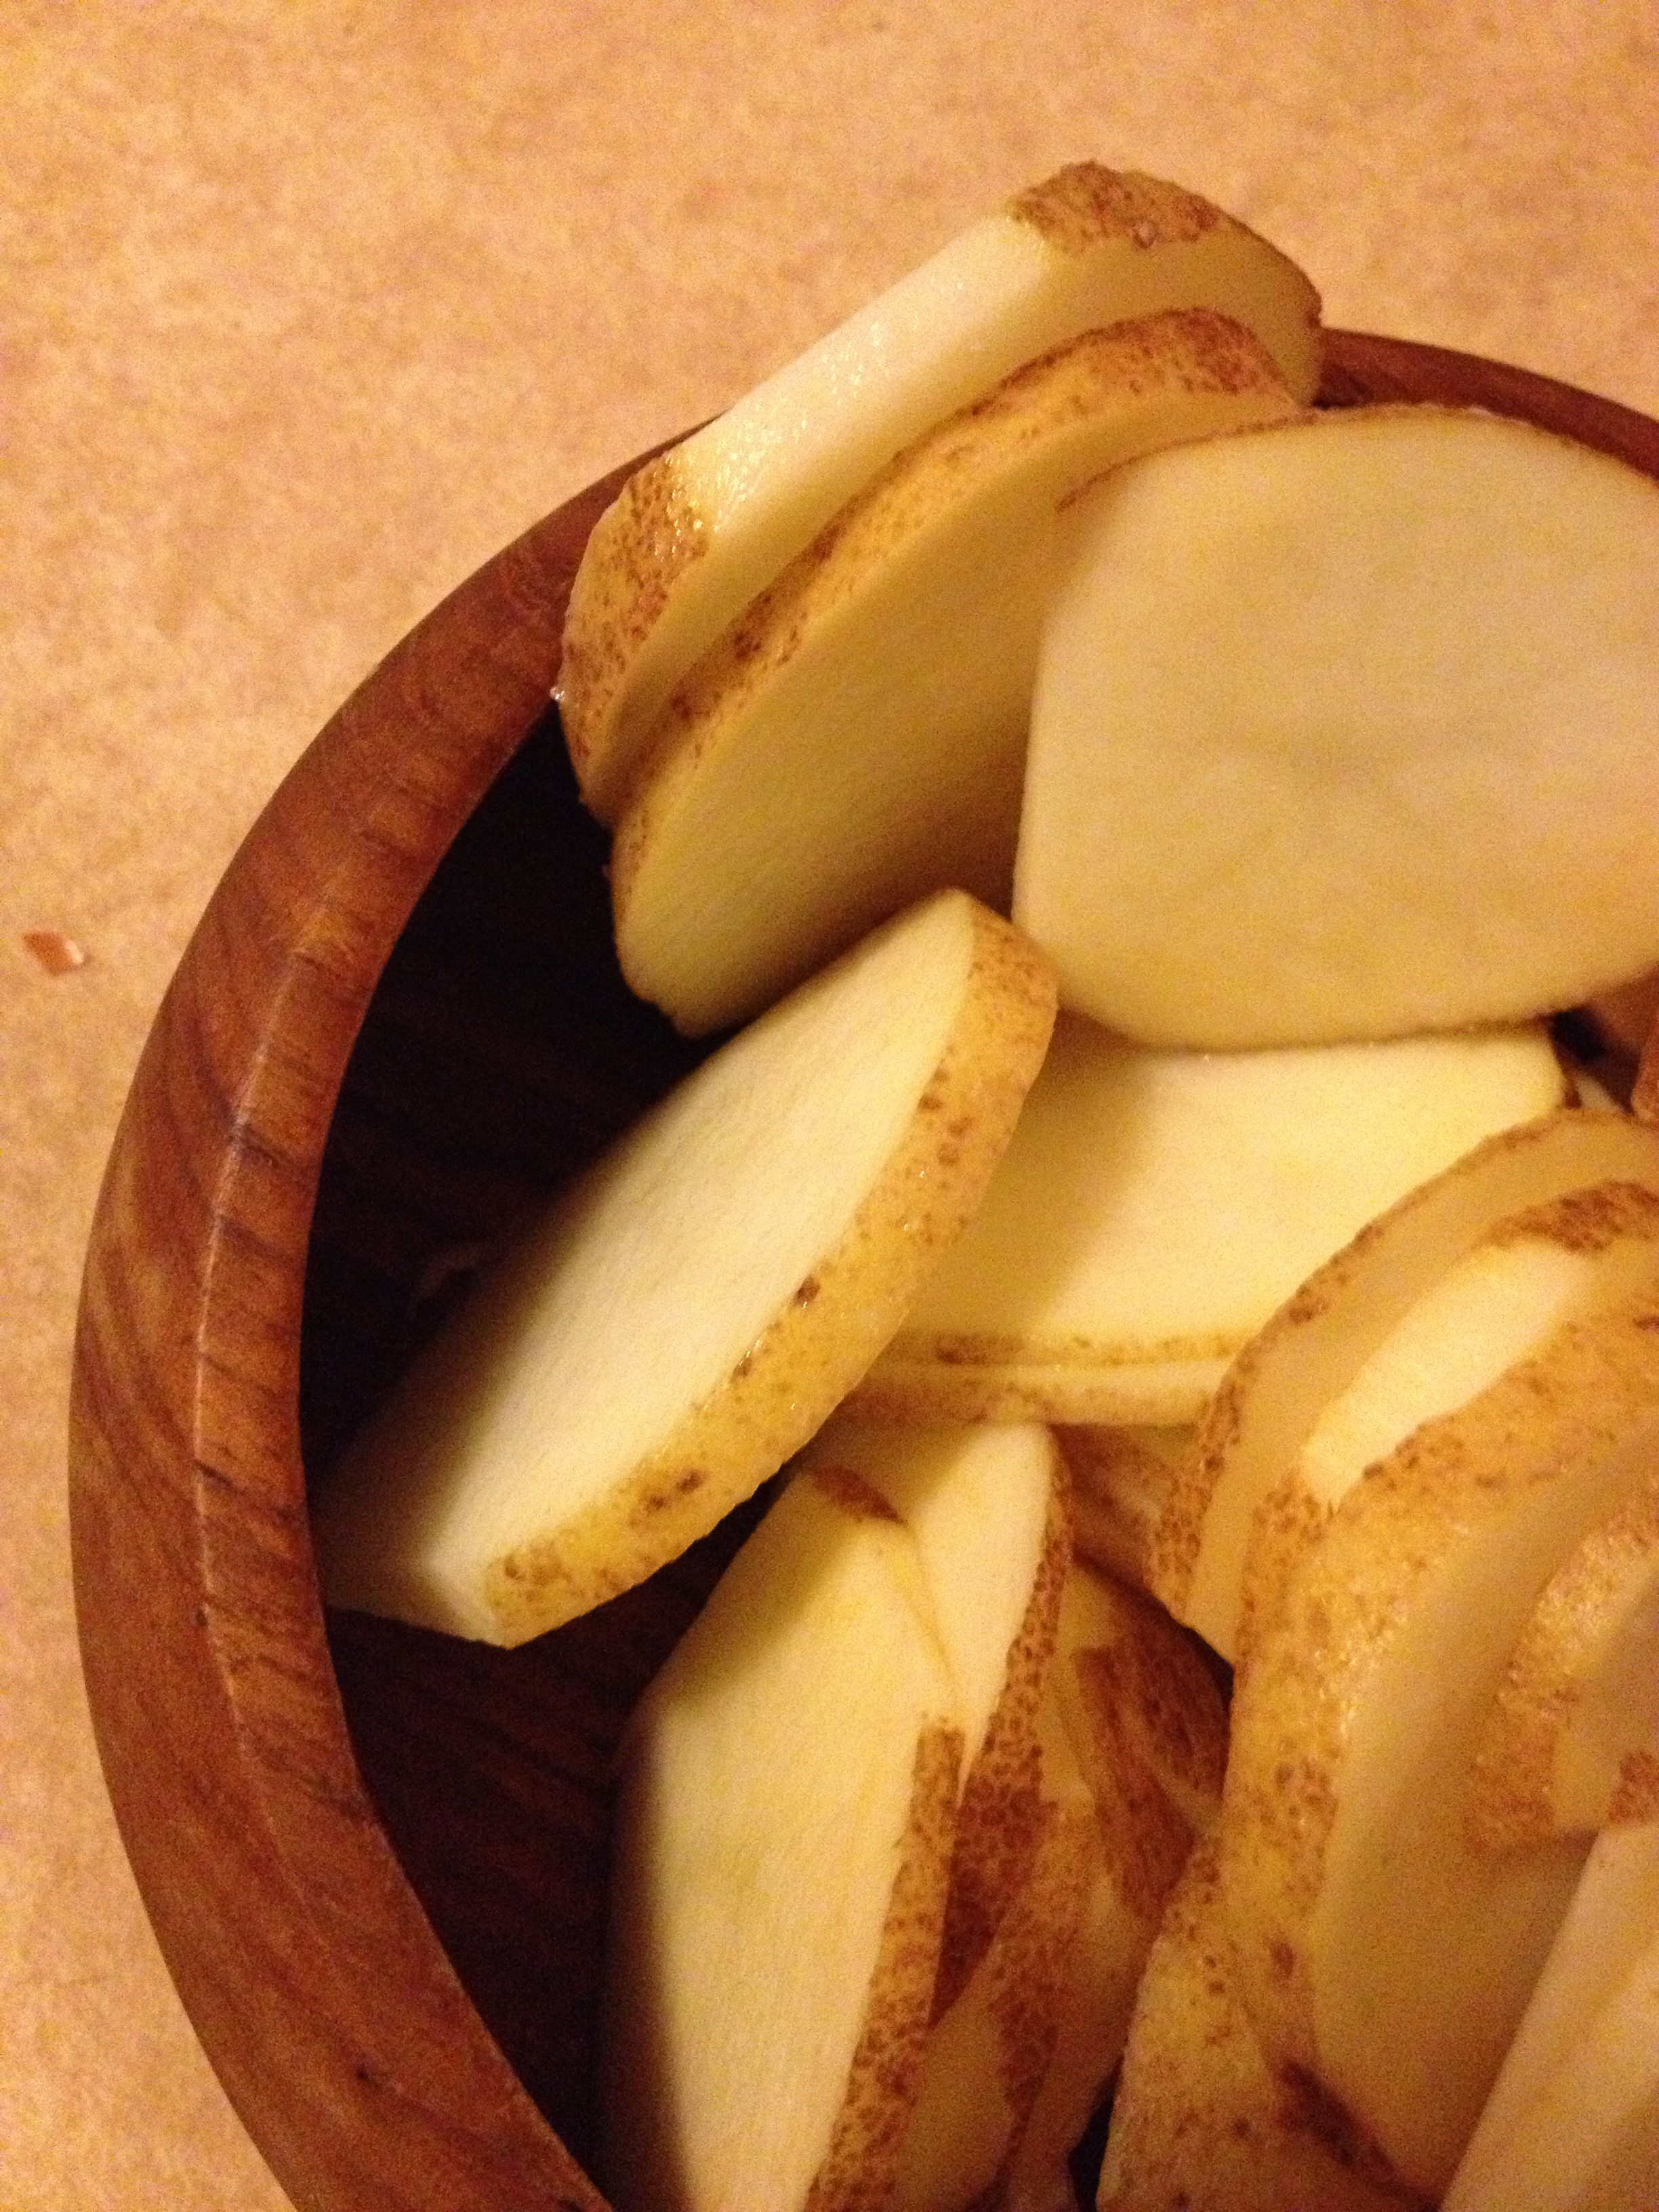 Sliced uncooked taters